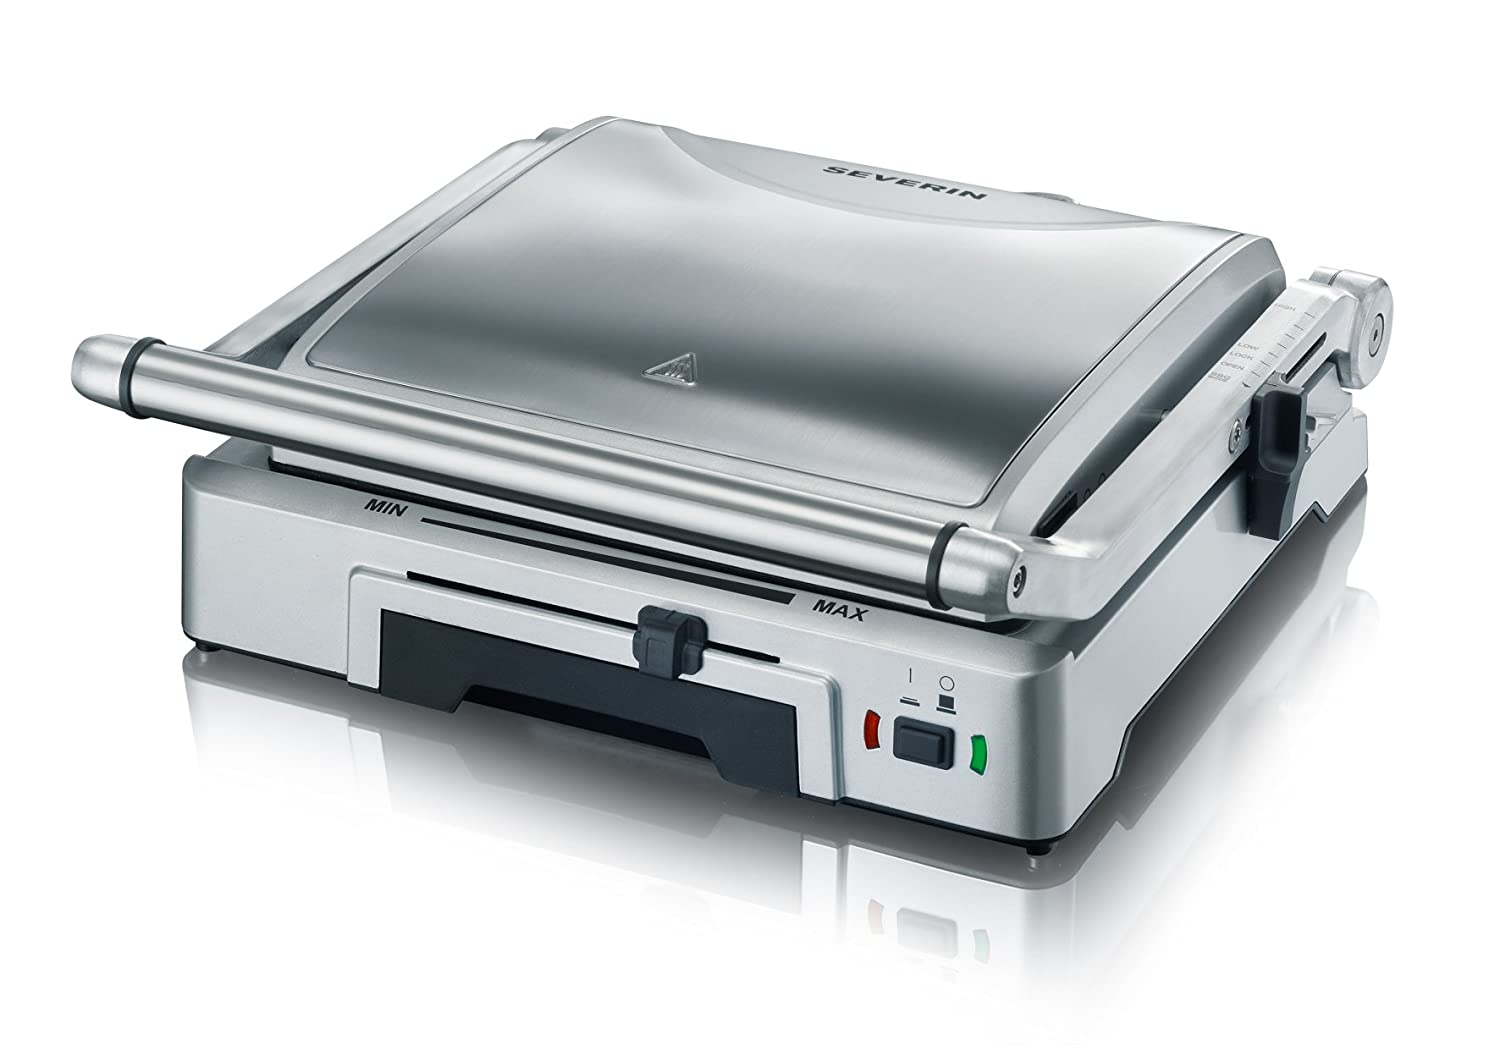 Severin Brushed Stainless Steel Automatic Grill, 1800 Watt, Silver S72392